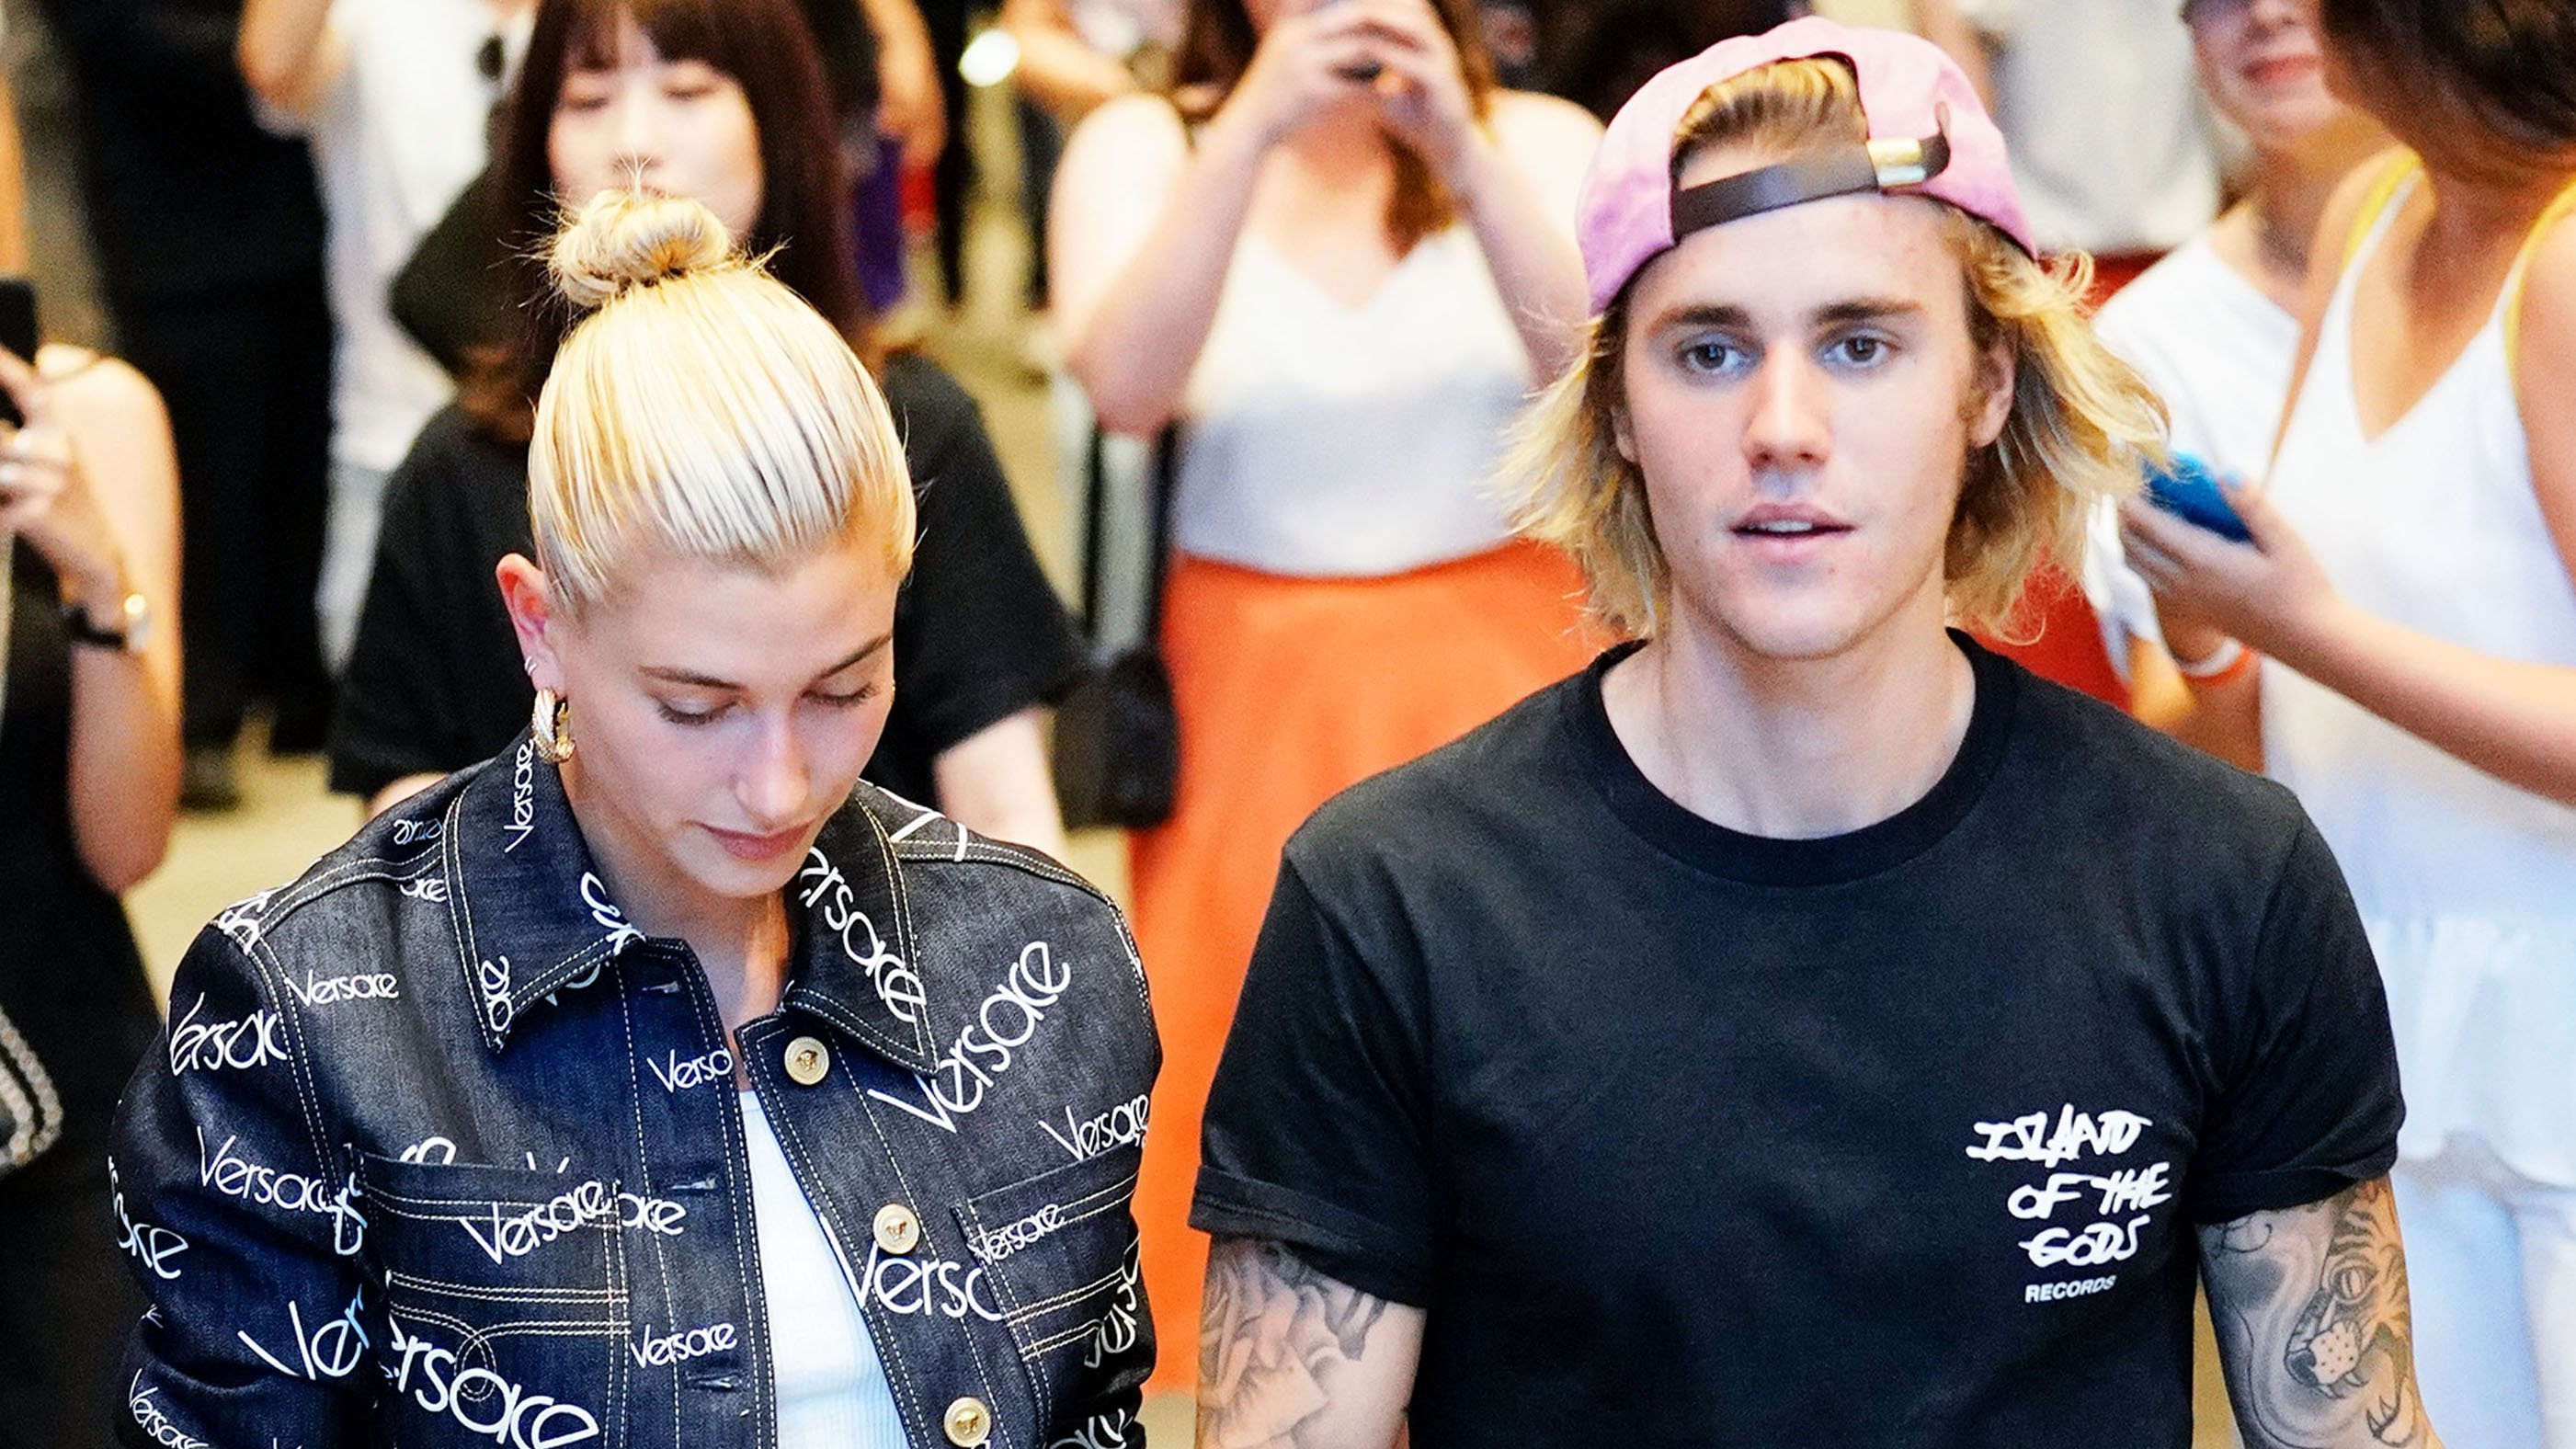 The Beliebers can relax now as all is apparently good in Justin Bieber's world.